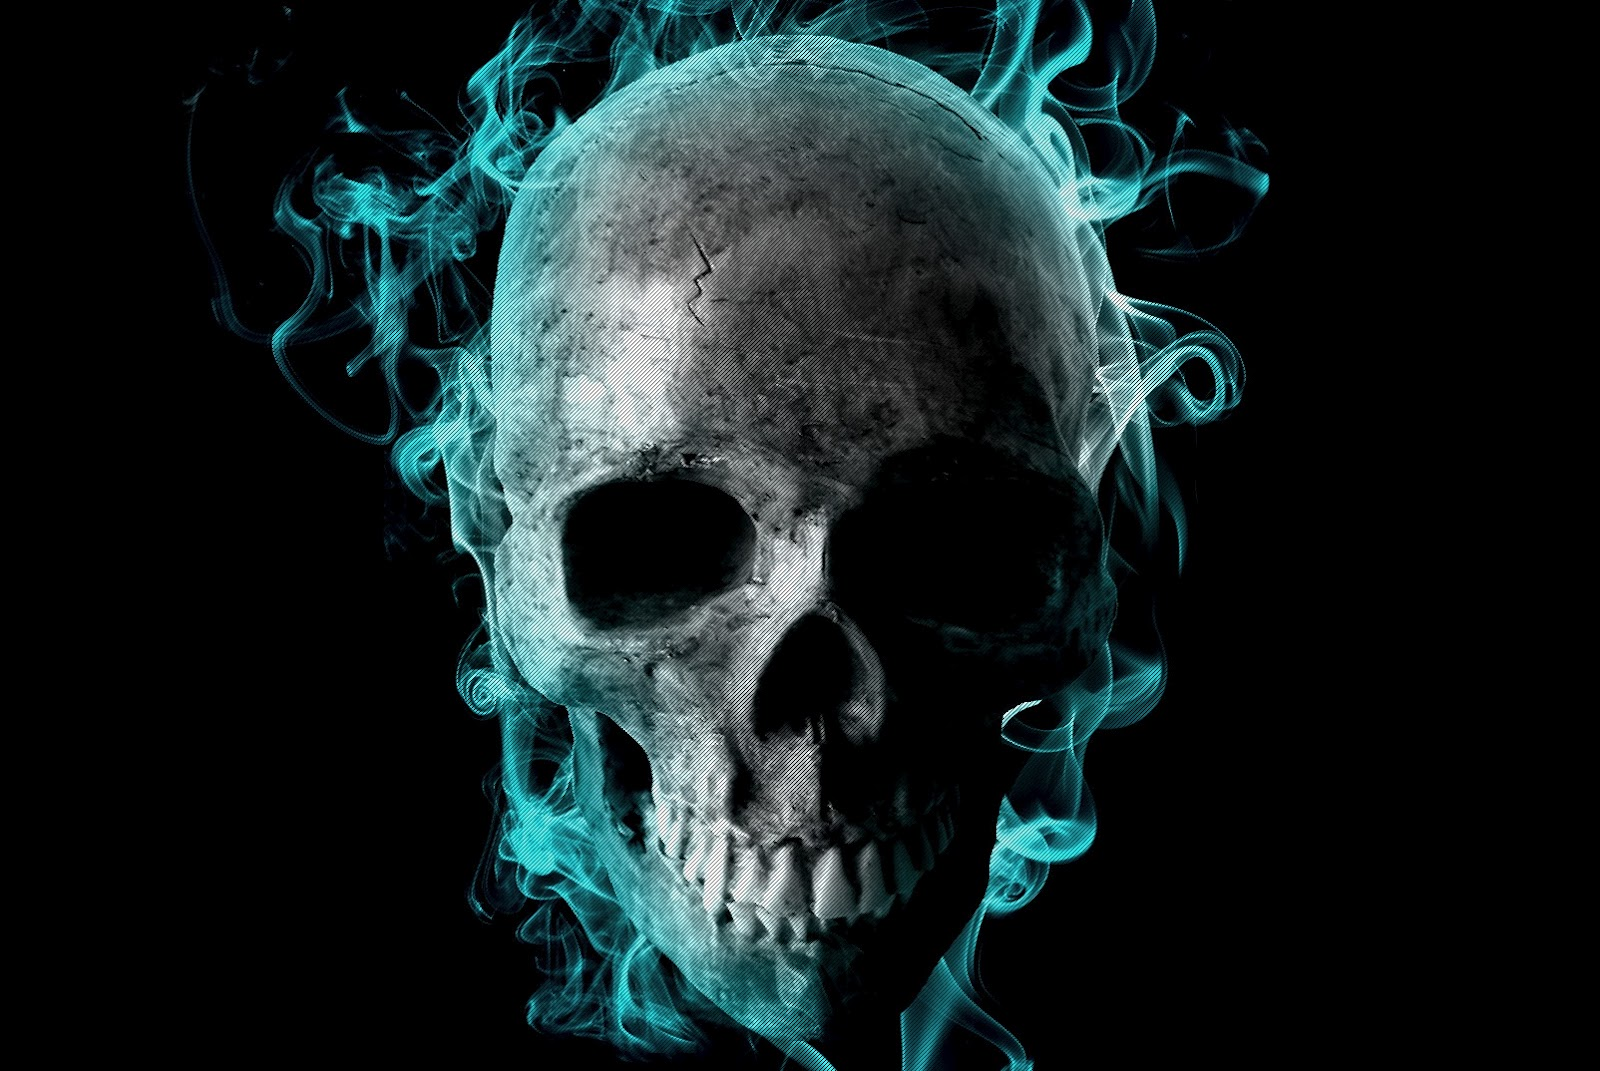 skull wallpaper for windows 7 - photo #44